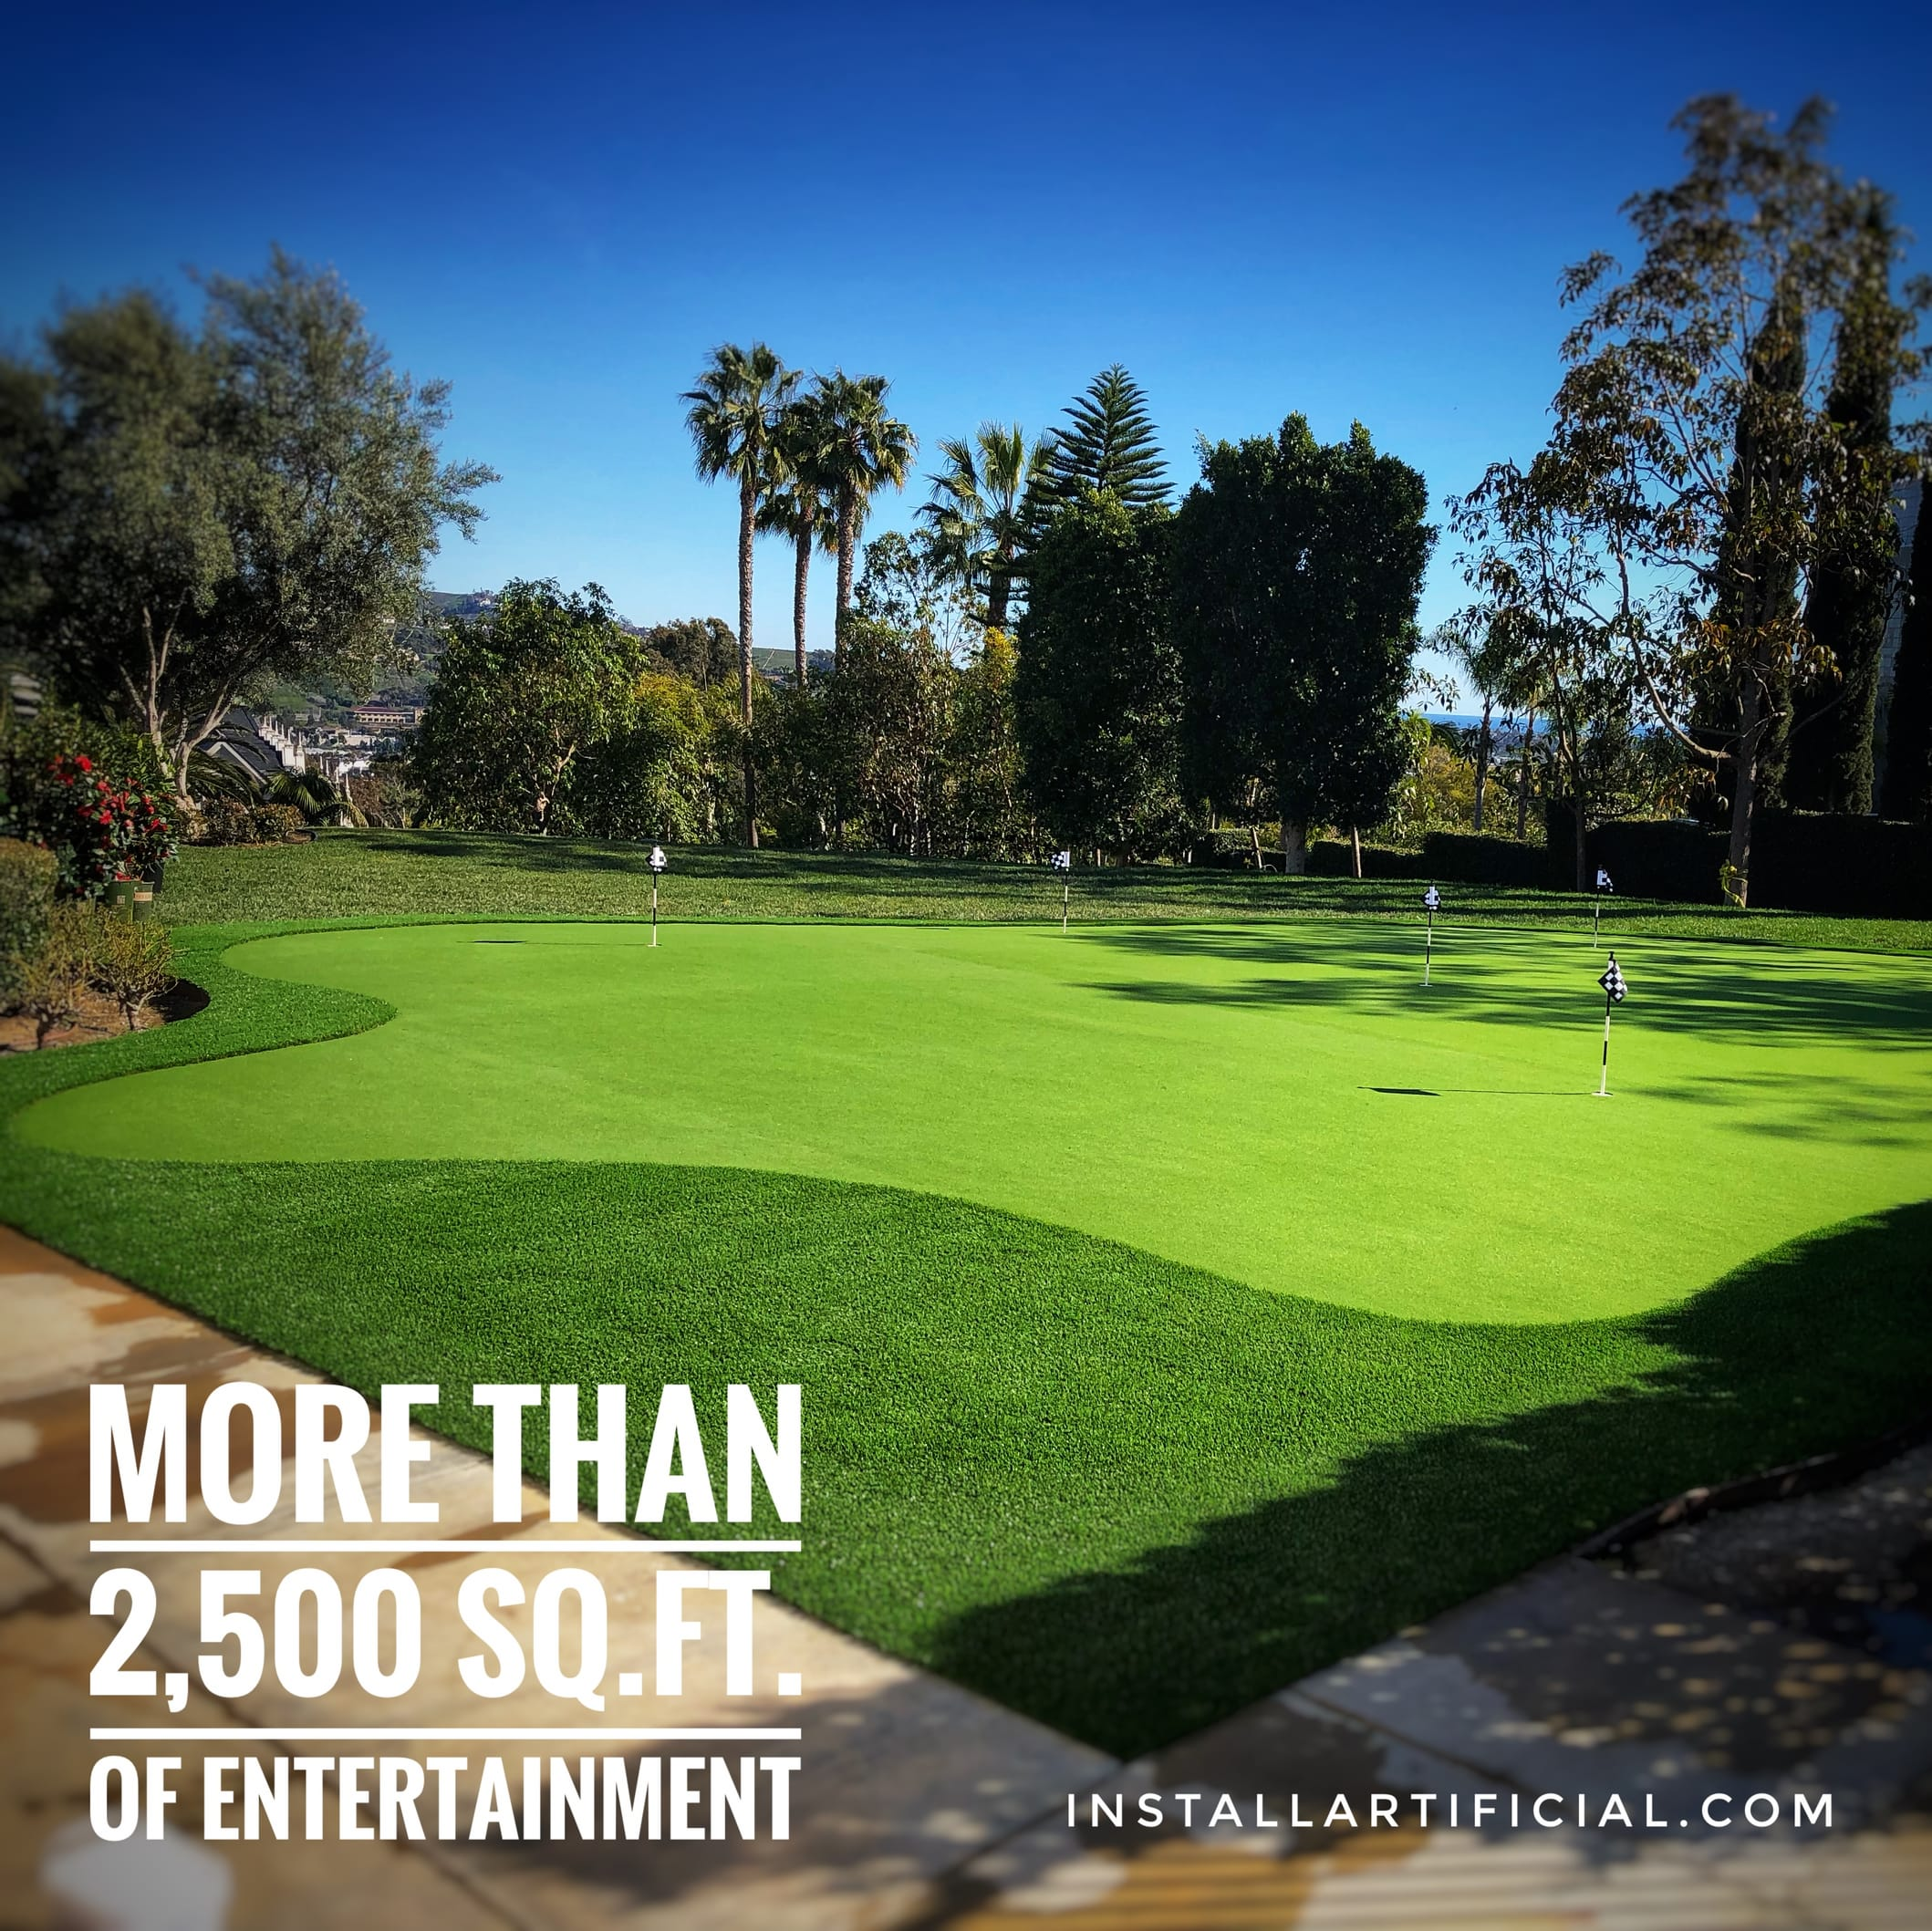 large putting green filed with artificial grass